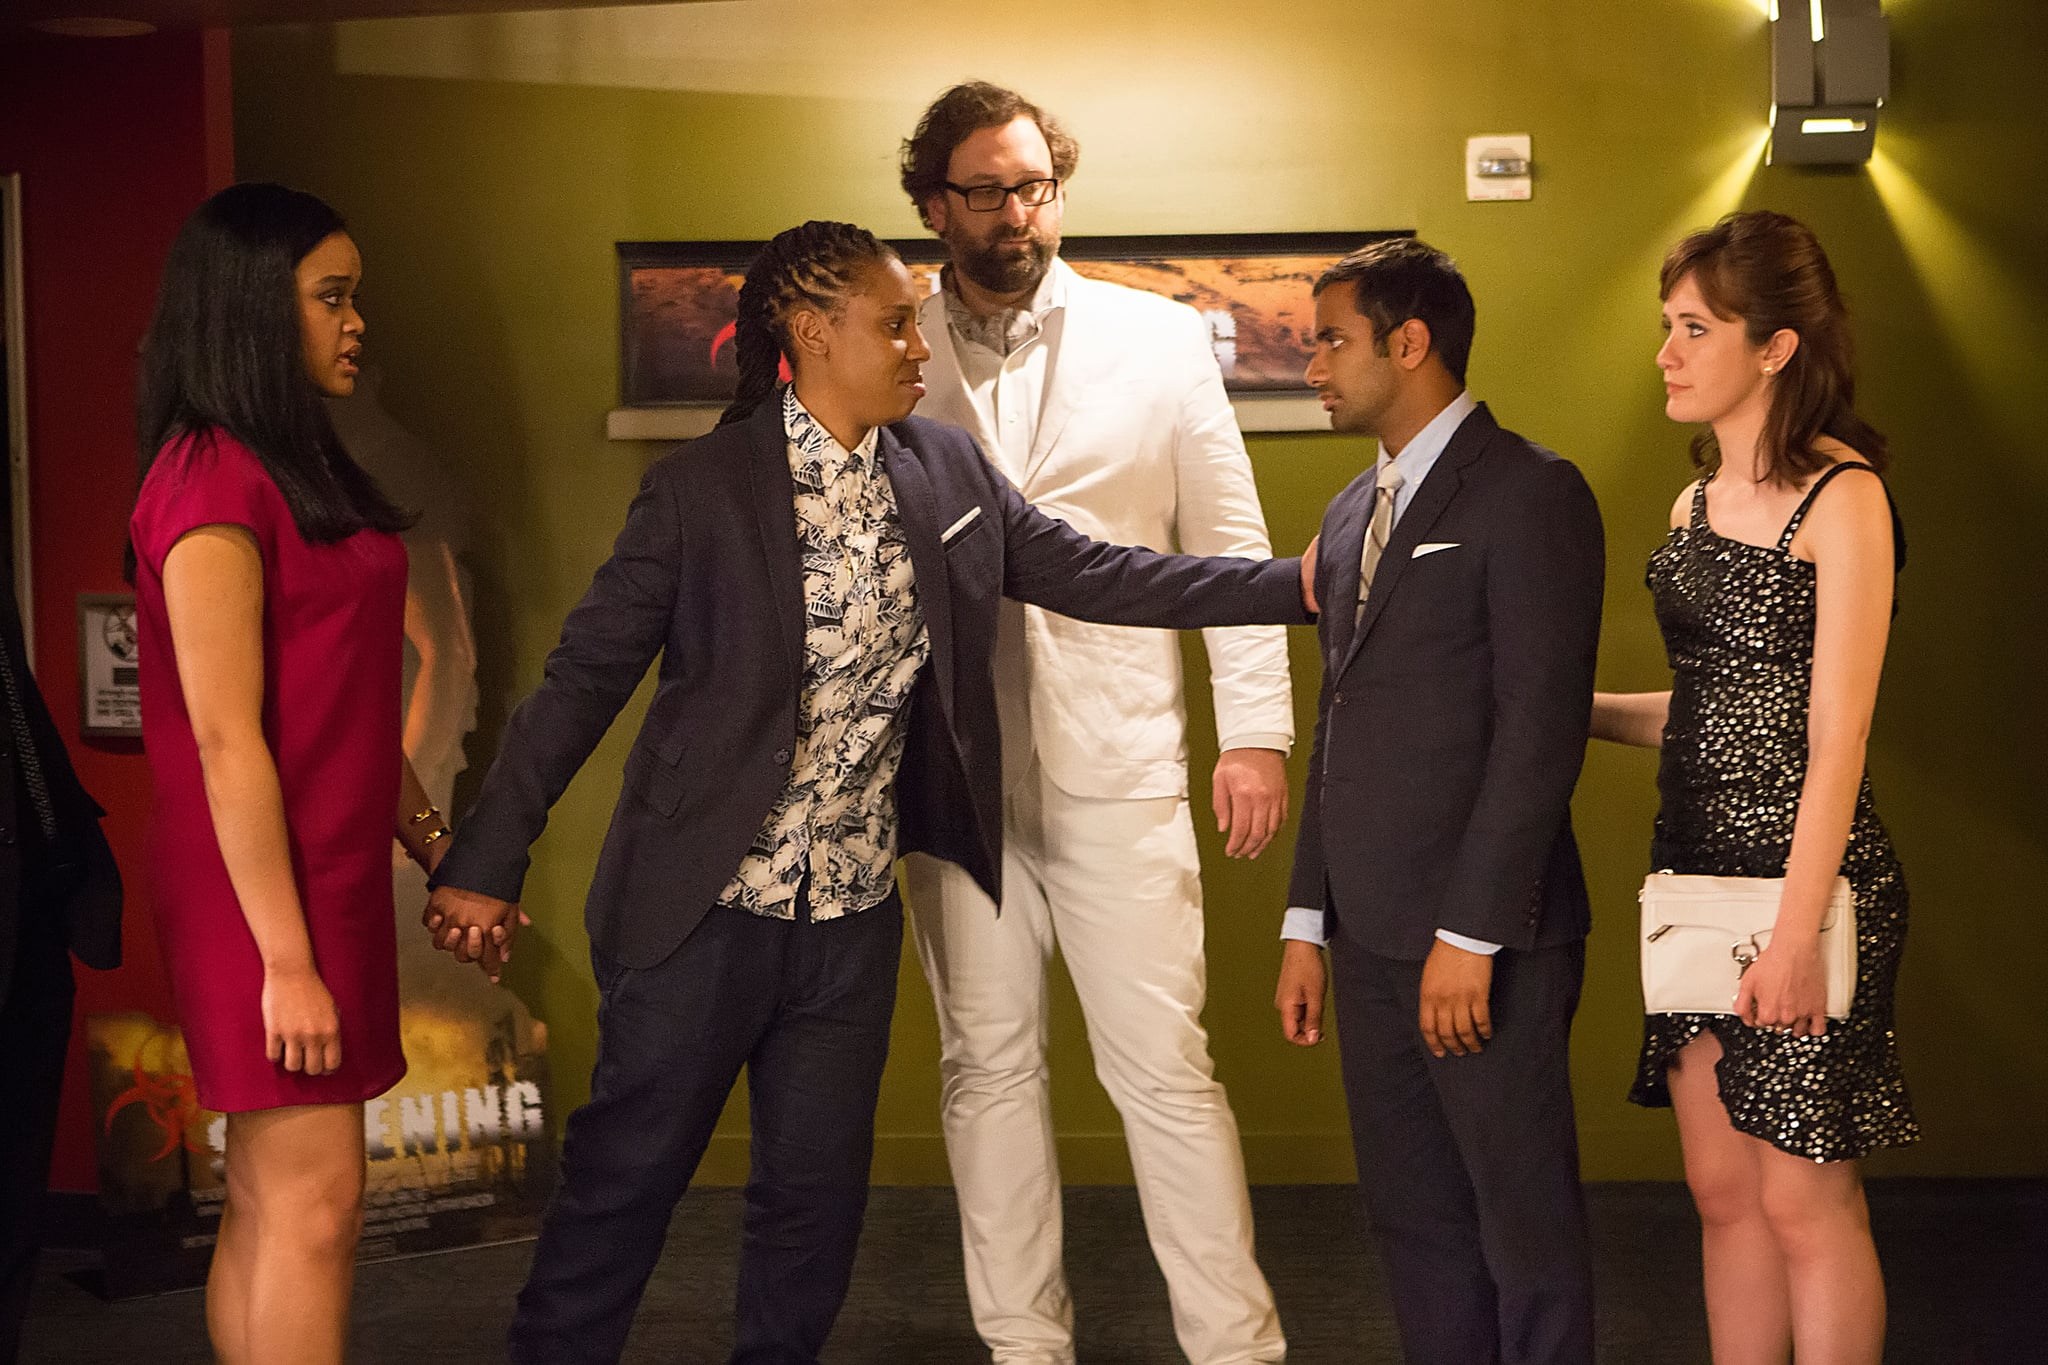 MASTER OF NONE, (from left): Danielle Davenport, Lena Waithe, Eric Wareheim, Aziz Ansari, Noel Wells, 'Mornings', (Season 1, ep. 109, airs Nov. 6, 2015). photo: K.C. Bailey / Netflix / Courtesy: Everett Collection